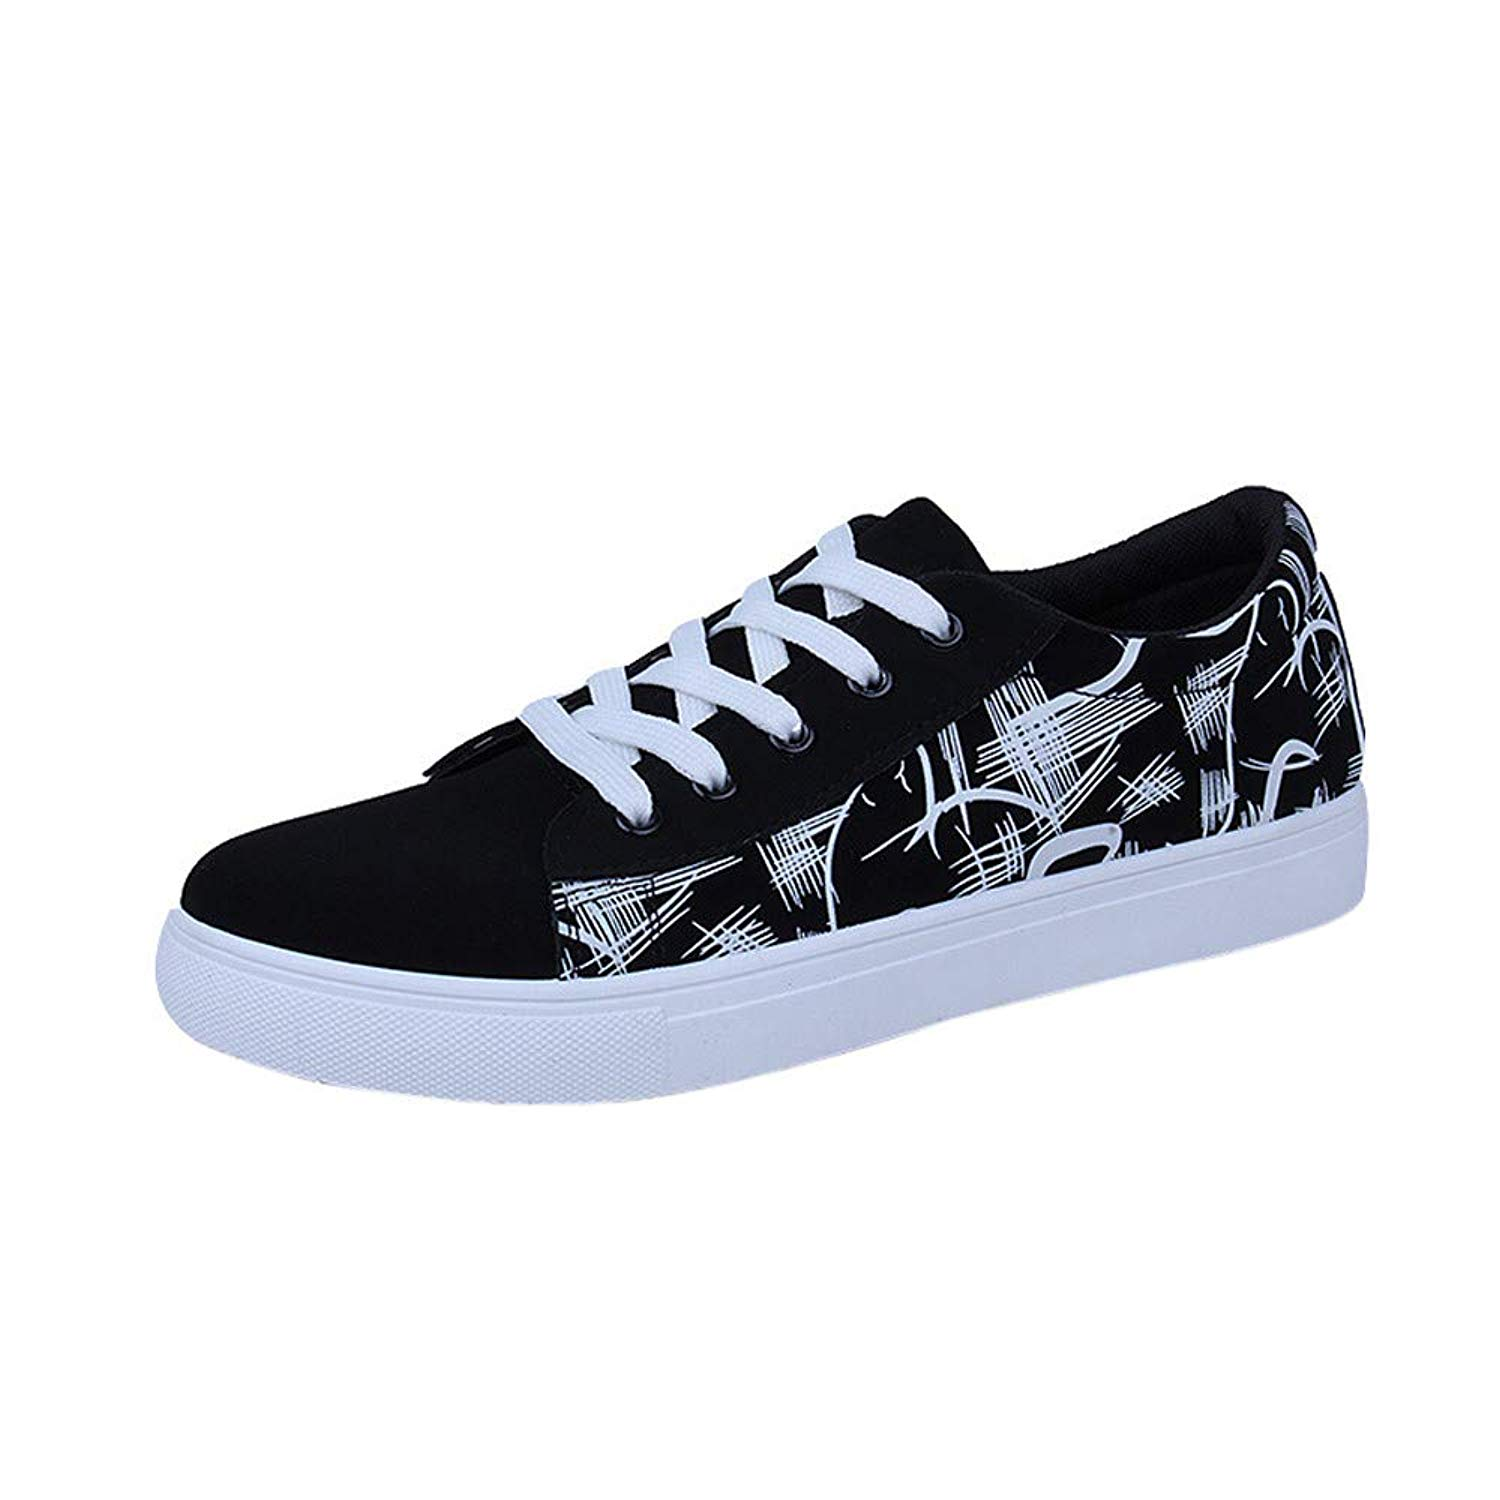 Sneakers for Men,Clearance Sale! Caopixx Men's Casual Graffiti Printing Lace-up Sport Shoes Lightweight Sneaker